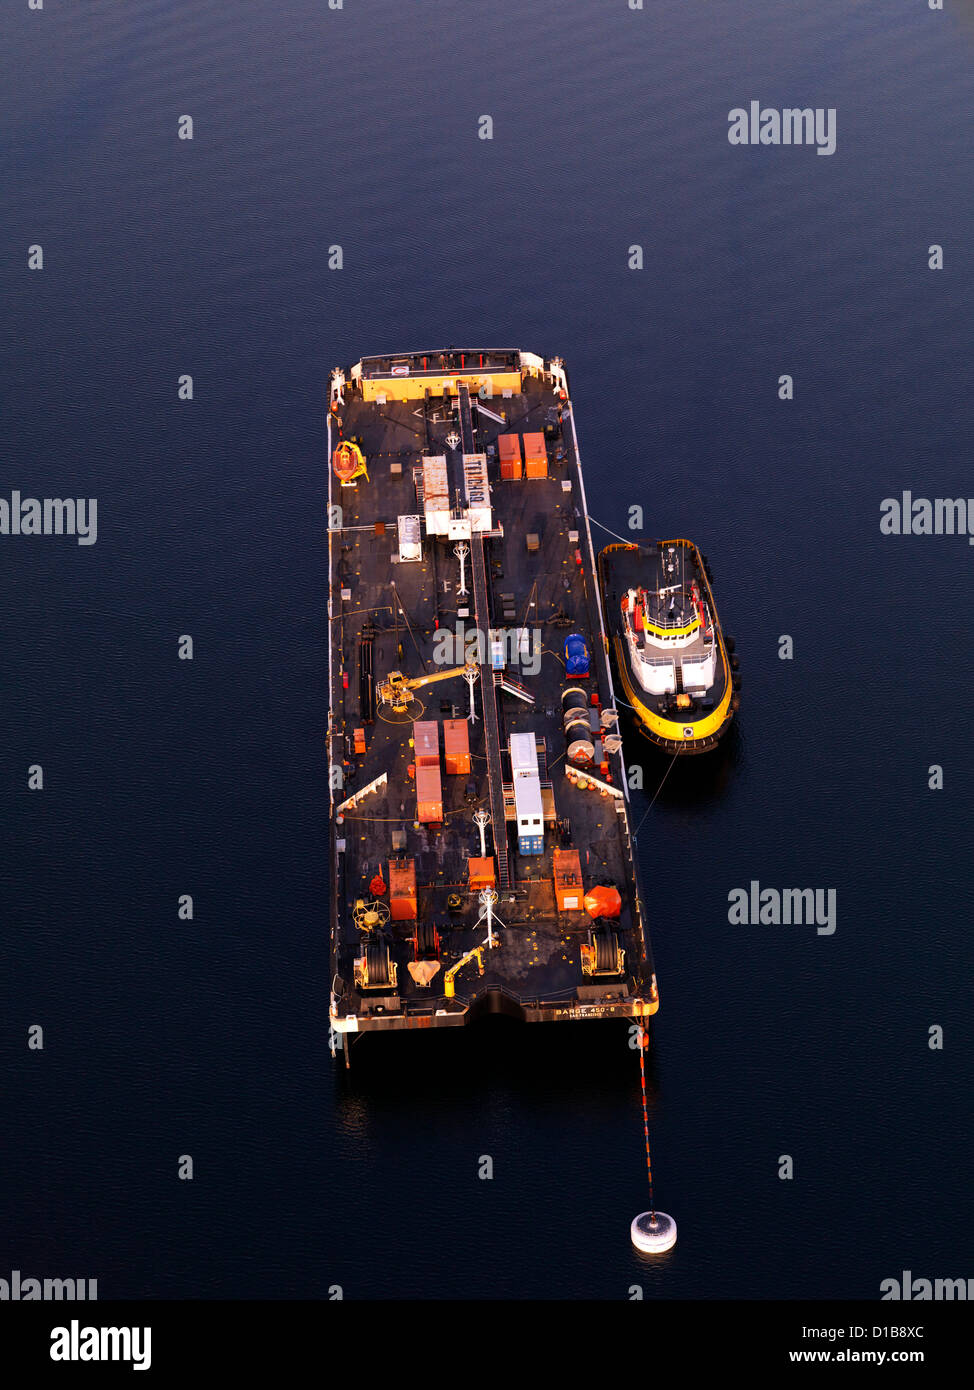 Emergency oil spill recovery barge and tug boat operated by Crawley an aerial photograph Valdez Alaska USA - Stock Image